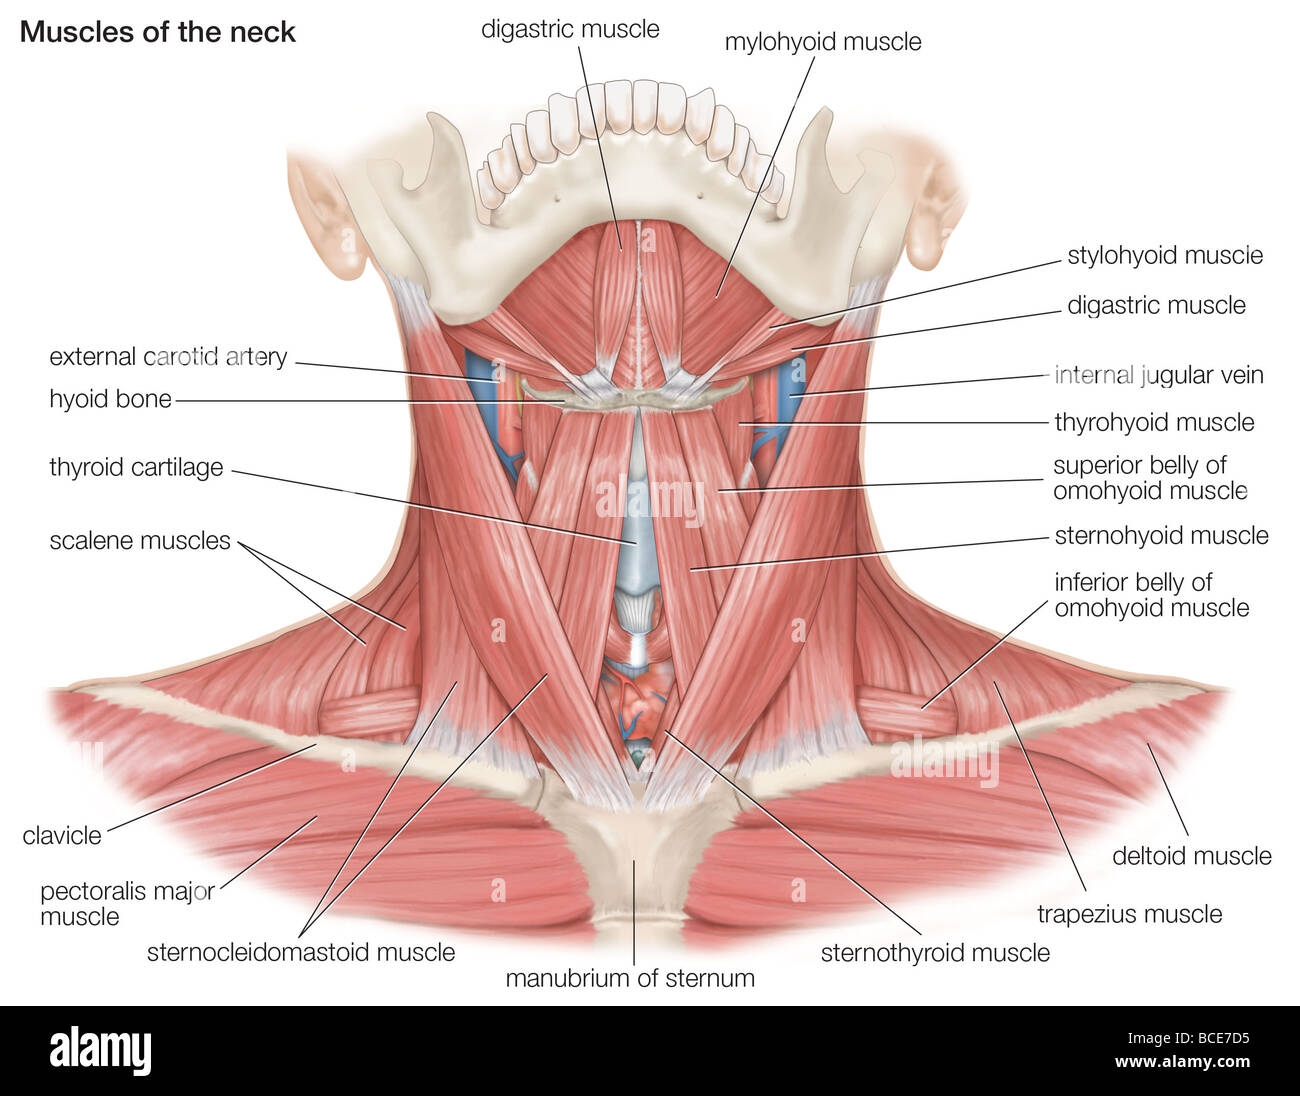 hight resolution of the muscles of the human neck as well as the major bones and blood vessels